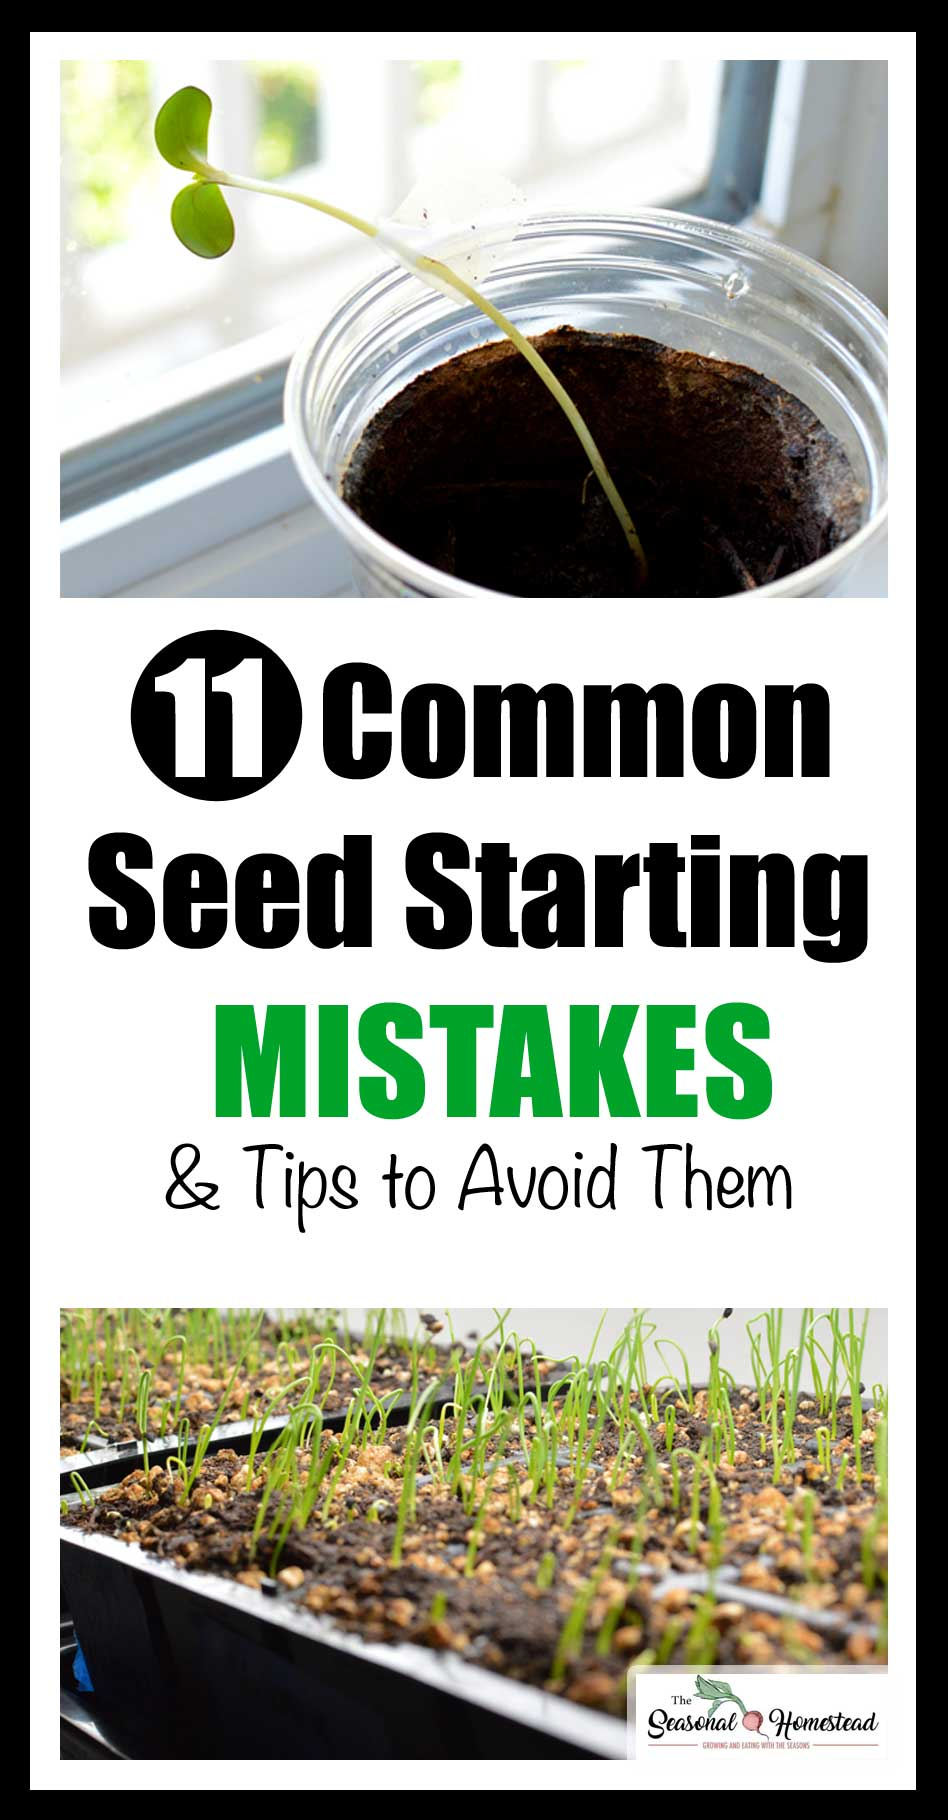 11-Seed-Starting-Mistakes-and-tips-to-avoid-them.jpg